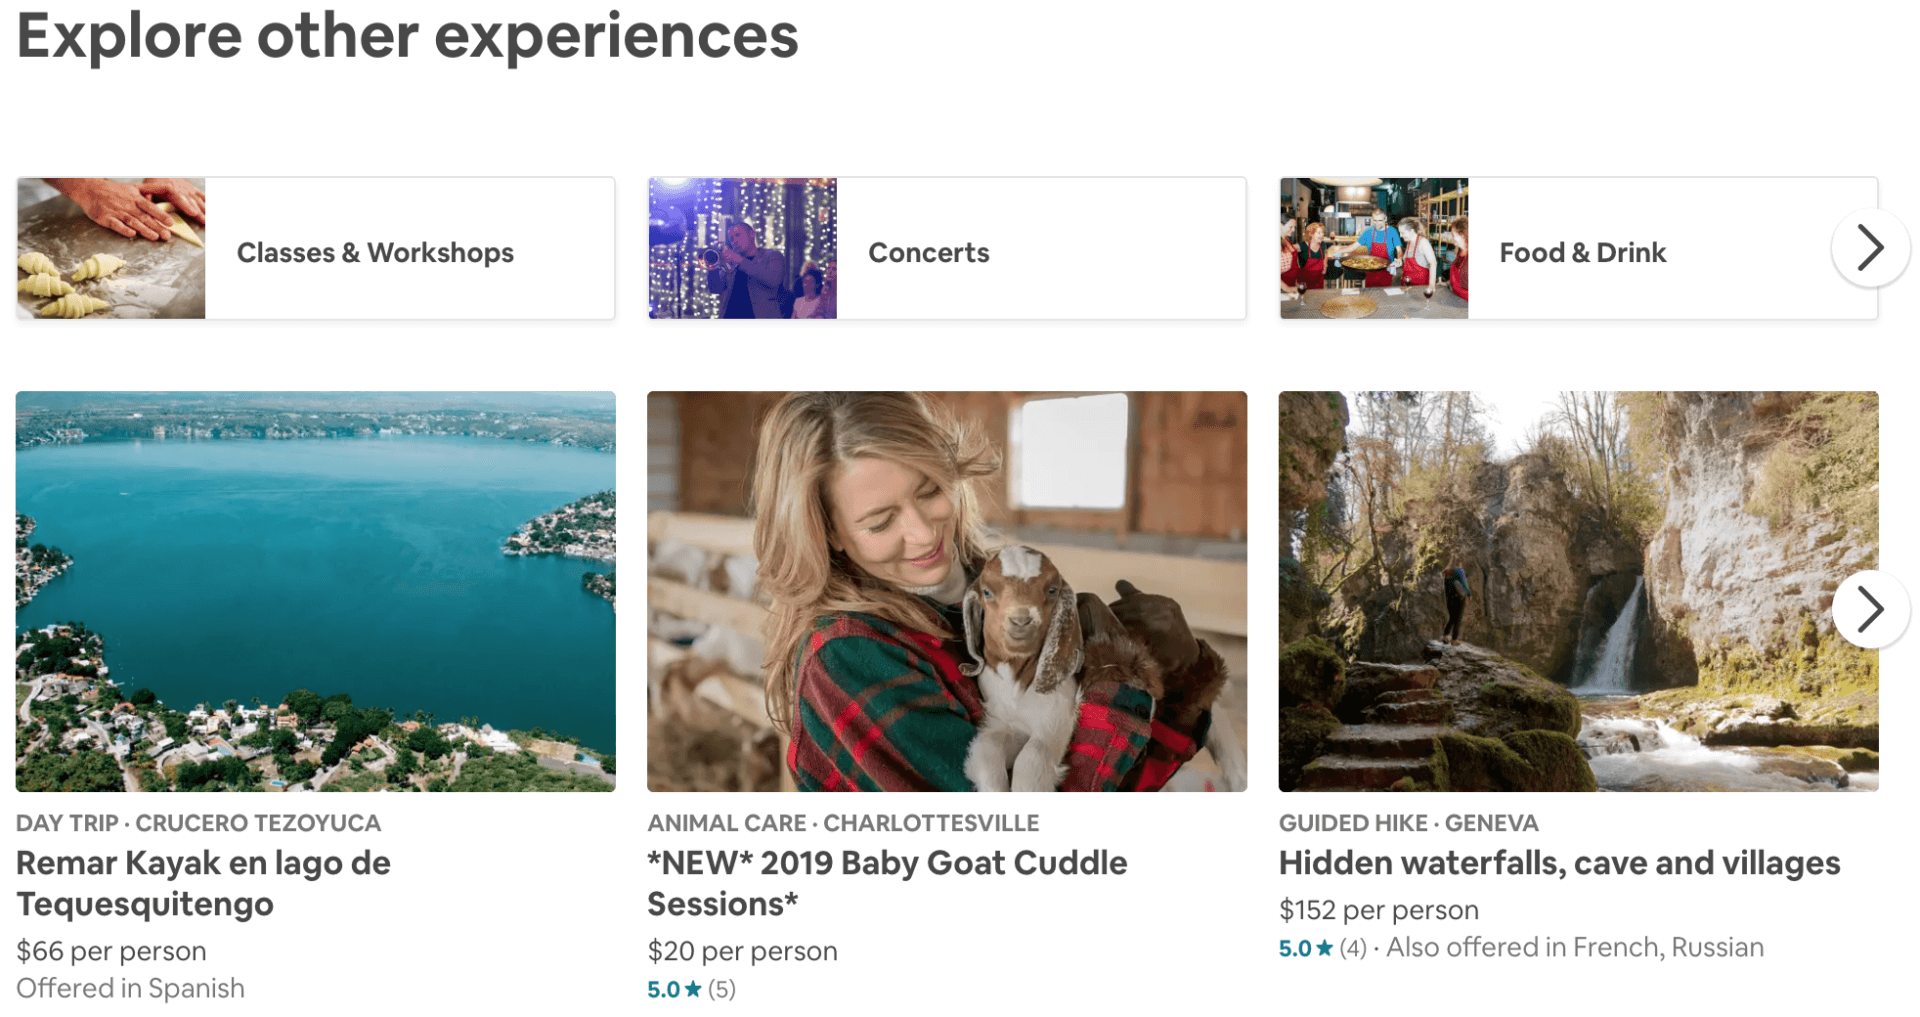 Airbnb's new video strategy lets experience and branding drive profits